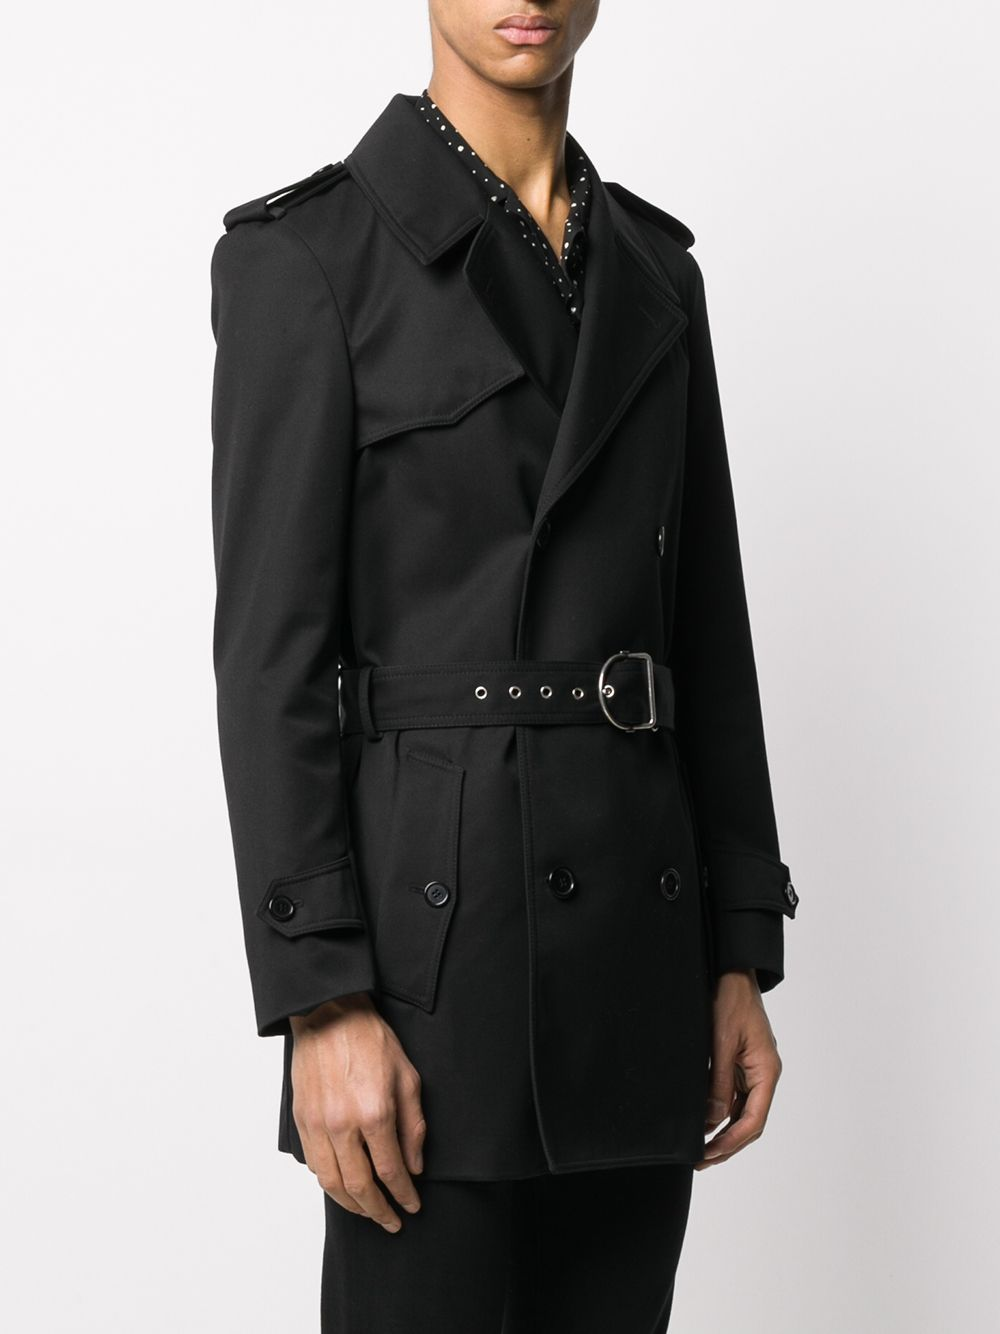 SAINT LAURENT MEN DOUBLE FACE TRENCH COAT